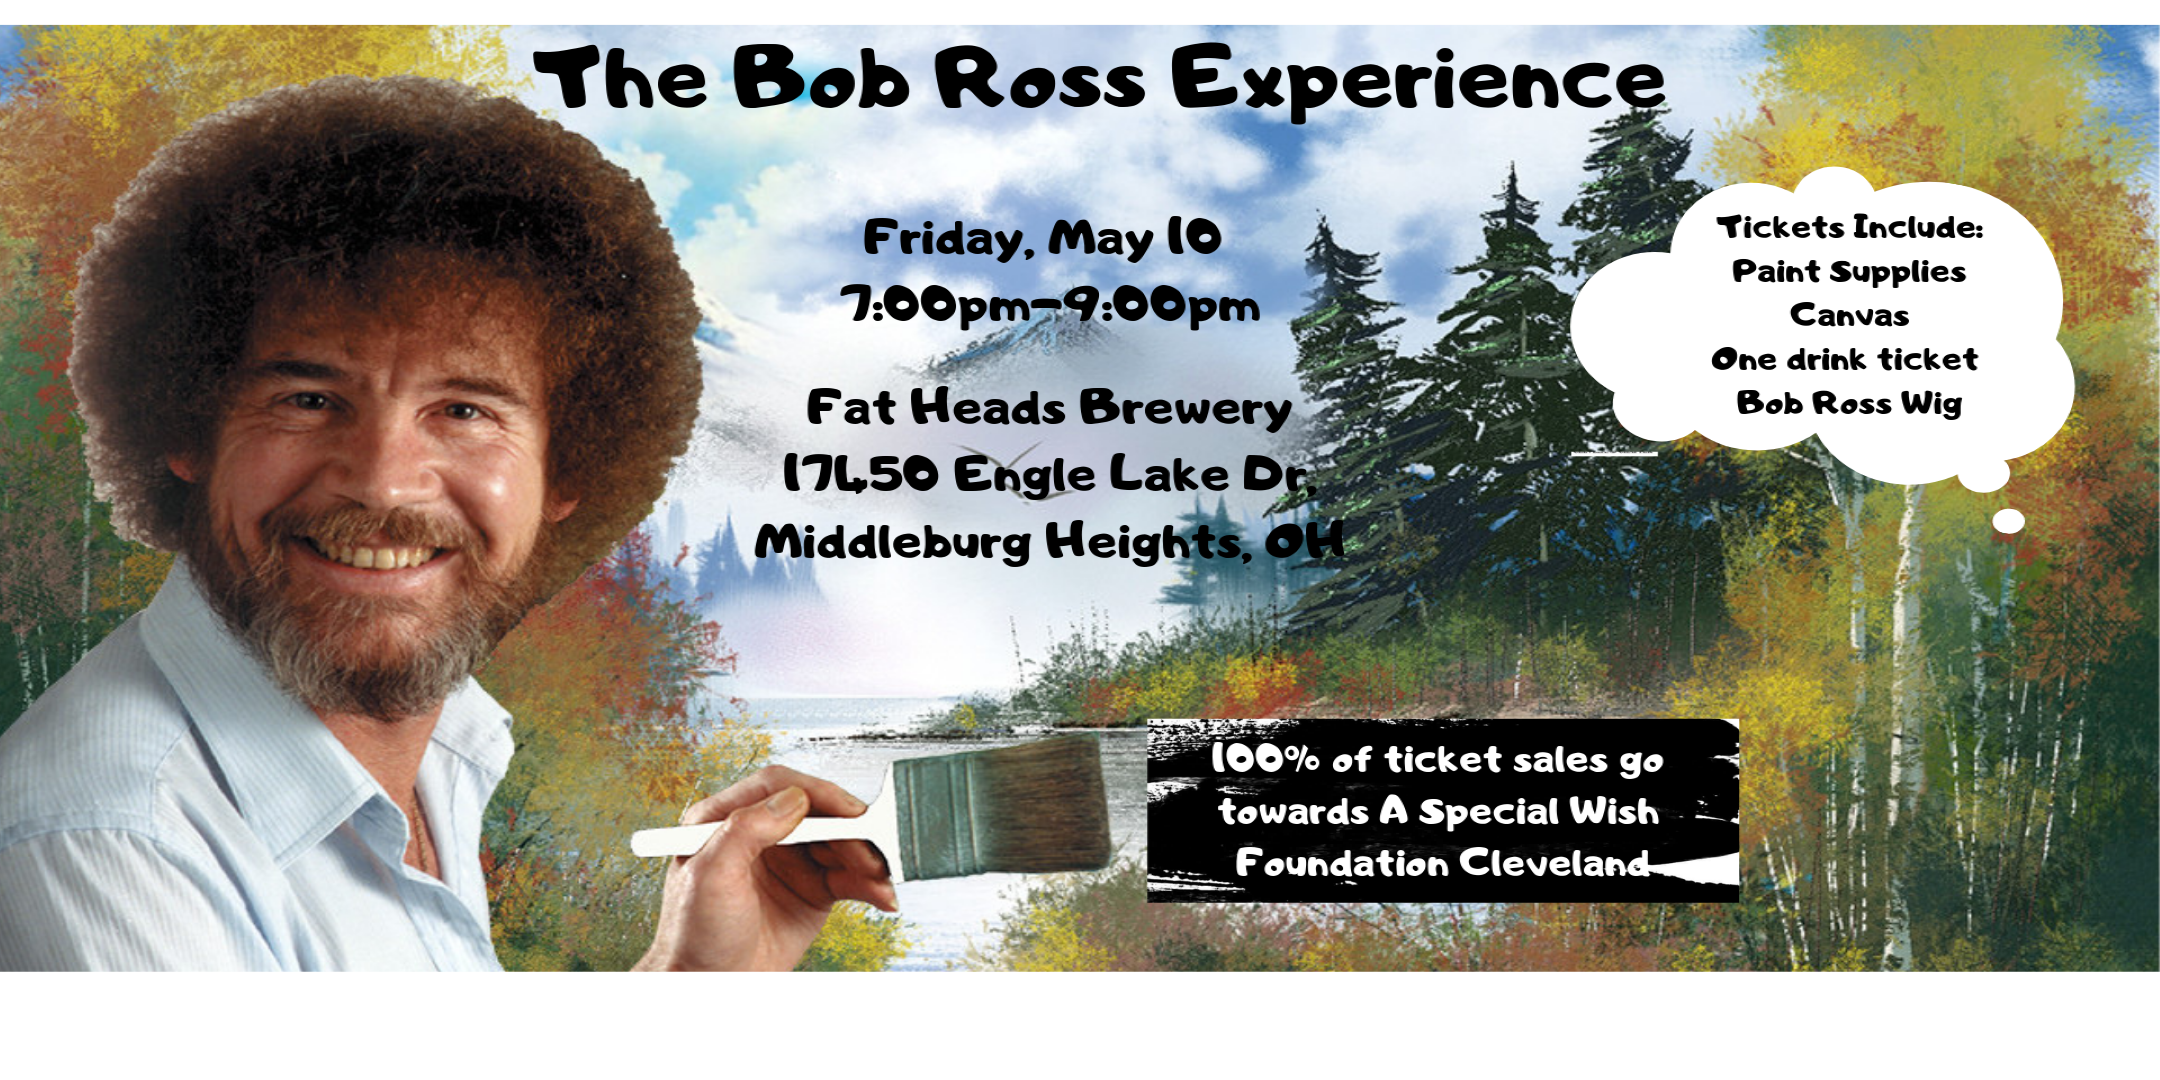 Update: Fat Head's Brewery to Host a Second Bob Ross